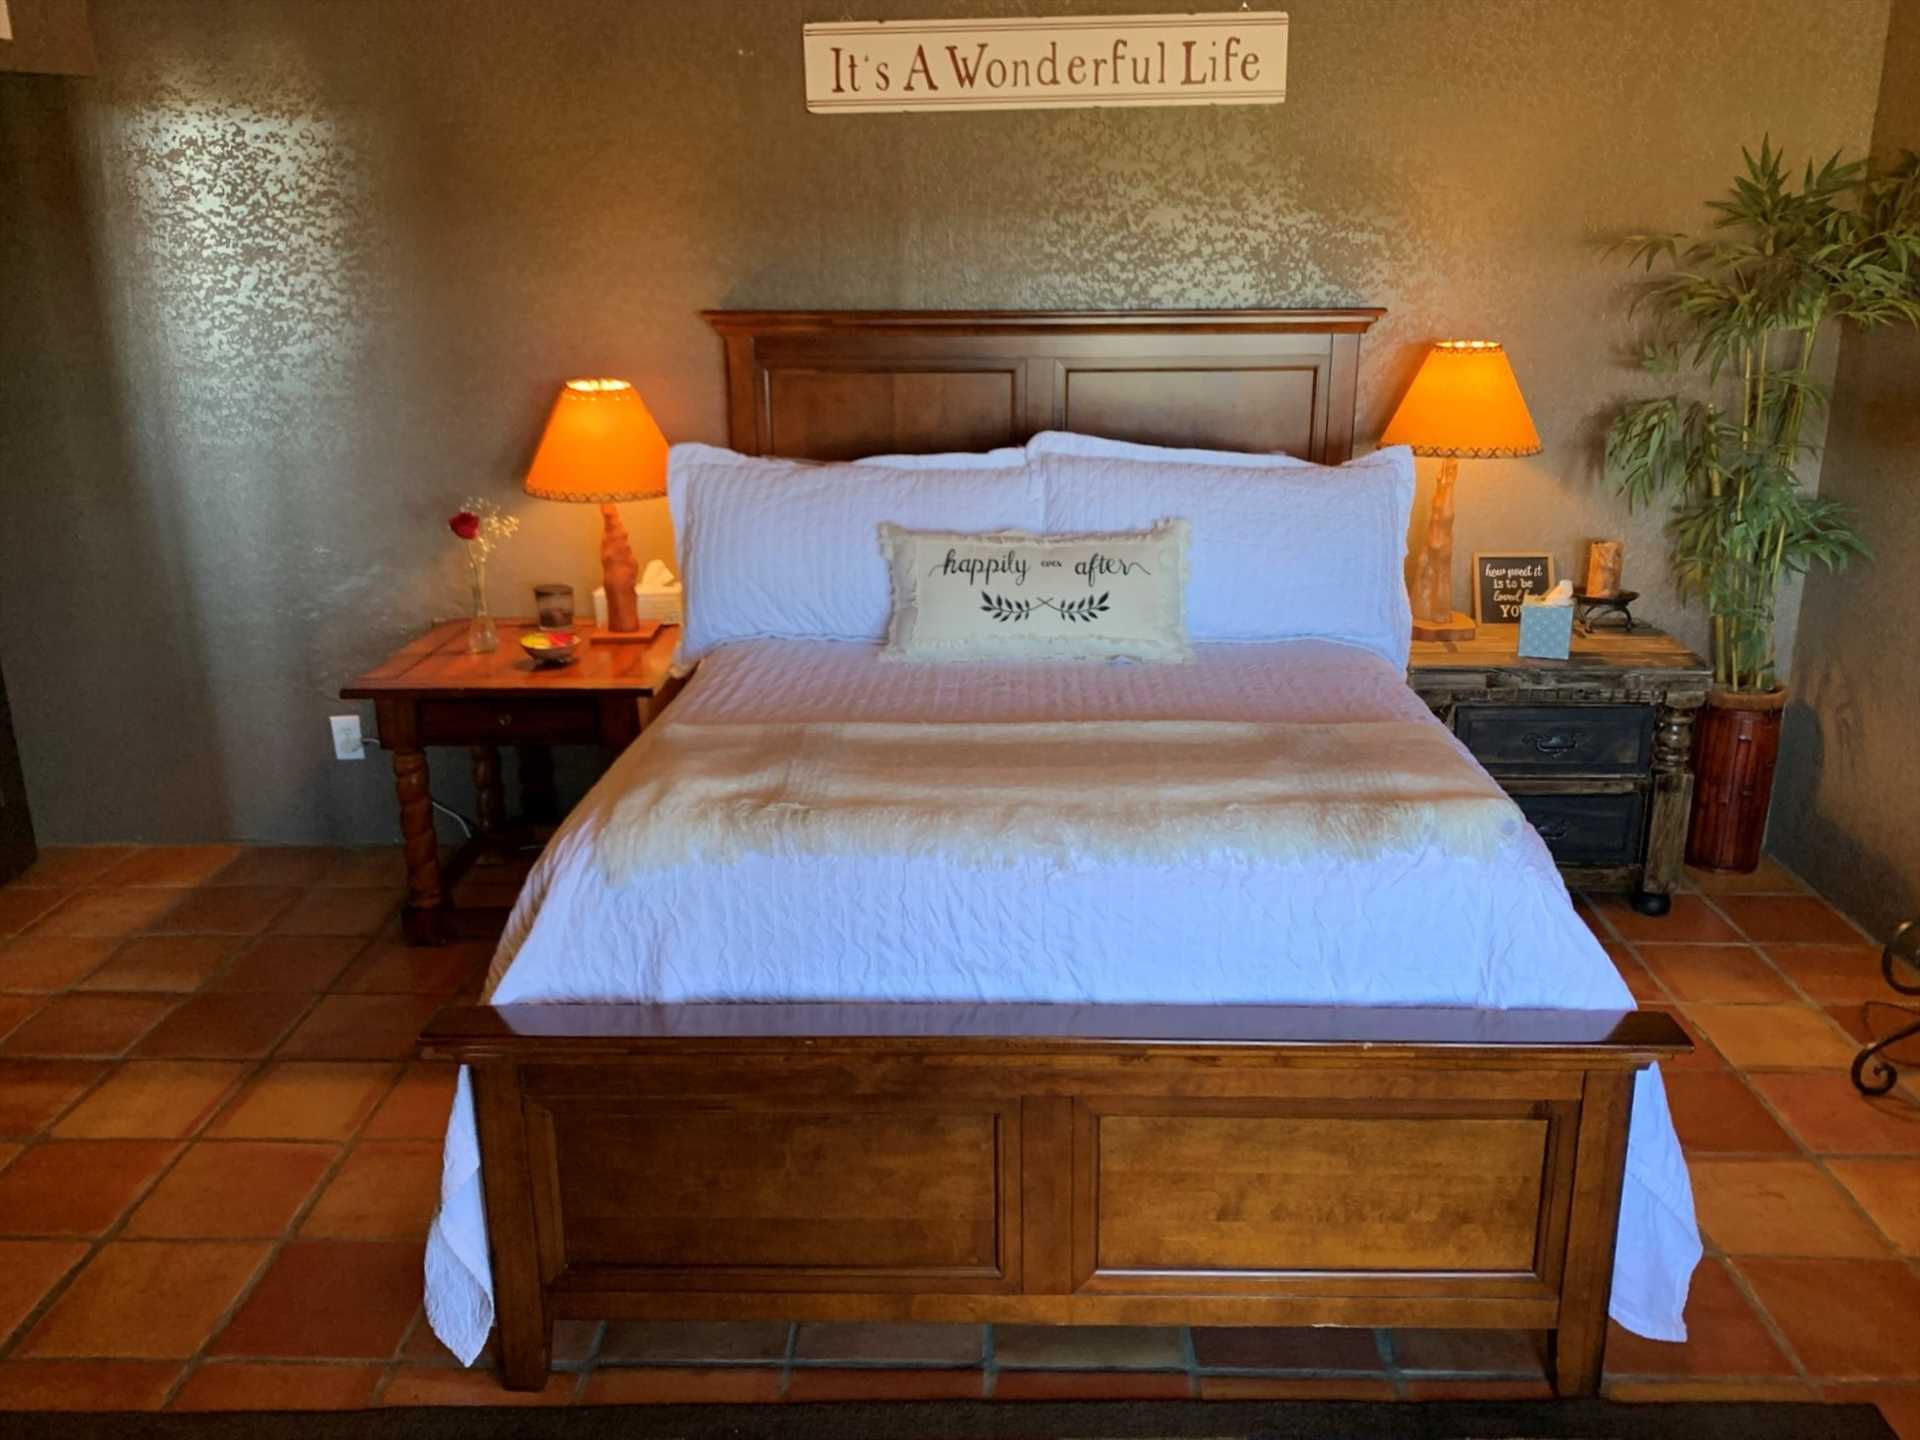 The sign above the plush queen bed reflects a philosophy you'll take home with you after a restful visit here.